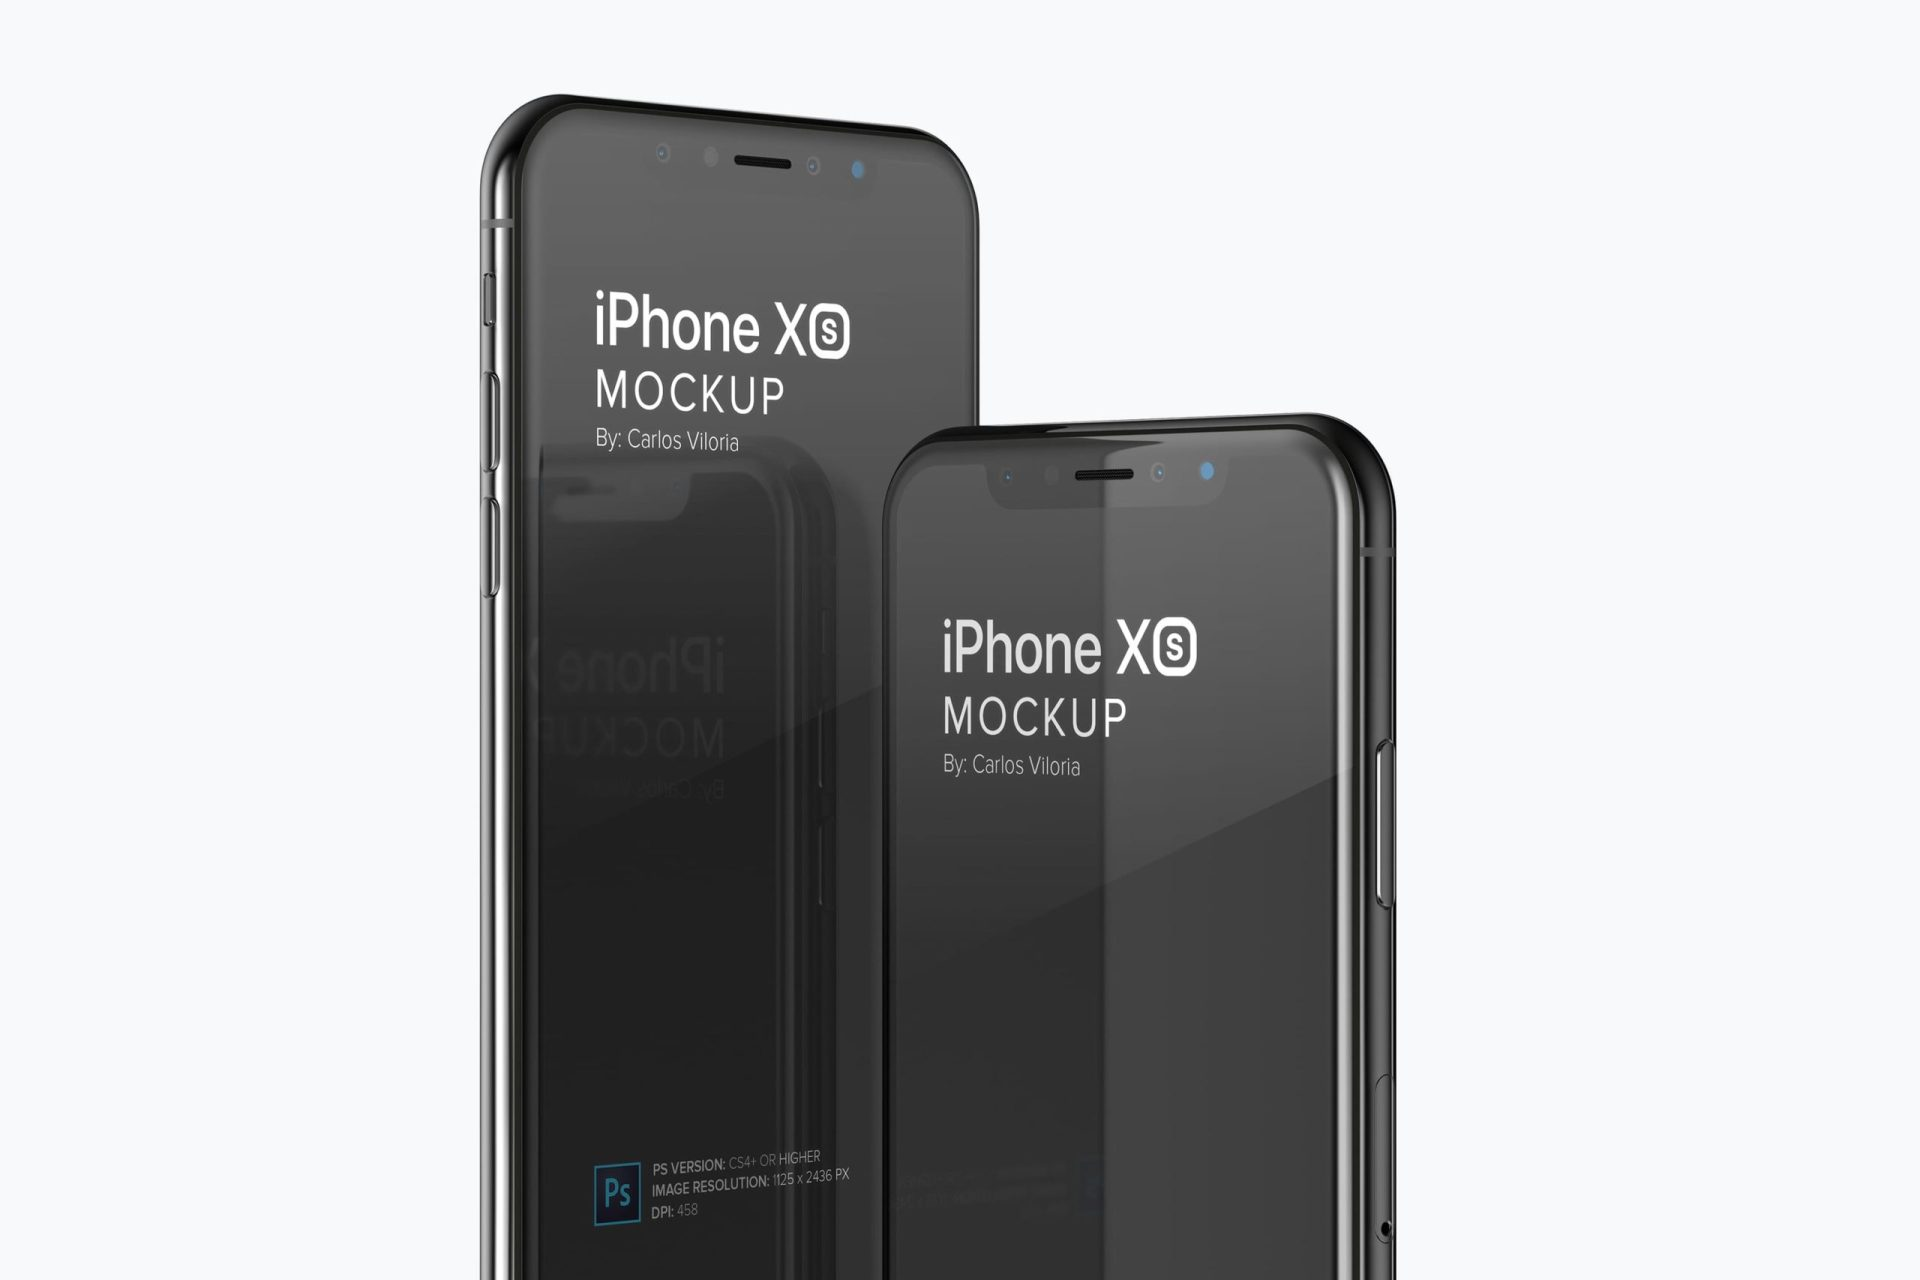 Free Mockup: iPhone XS to Display UI Apps for iOS